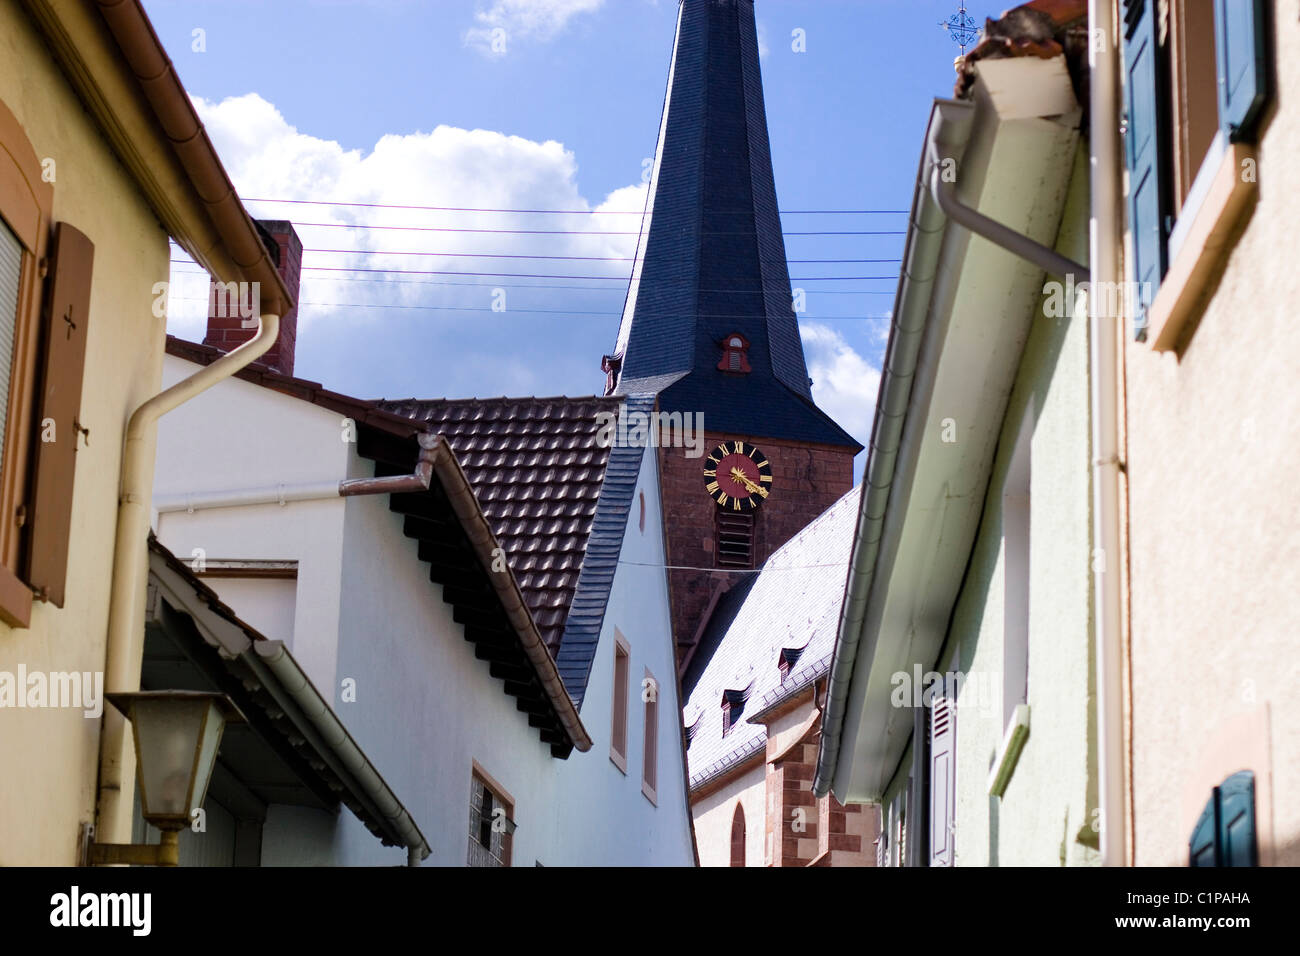 Germany, Deidesheim, buildings and church spire - Stock Image